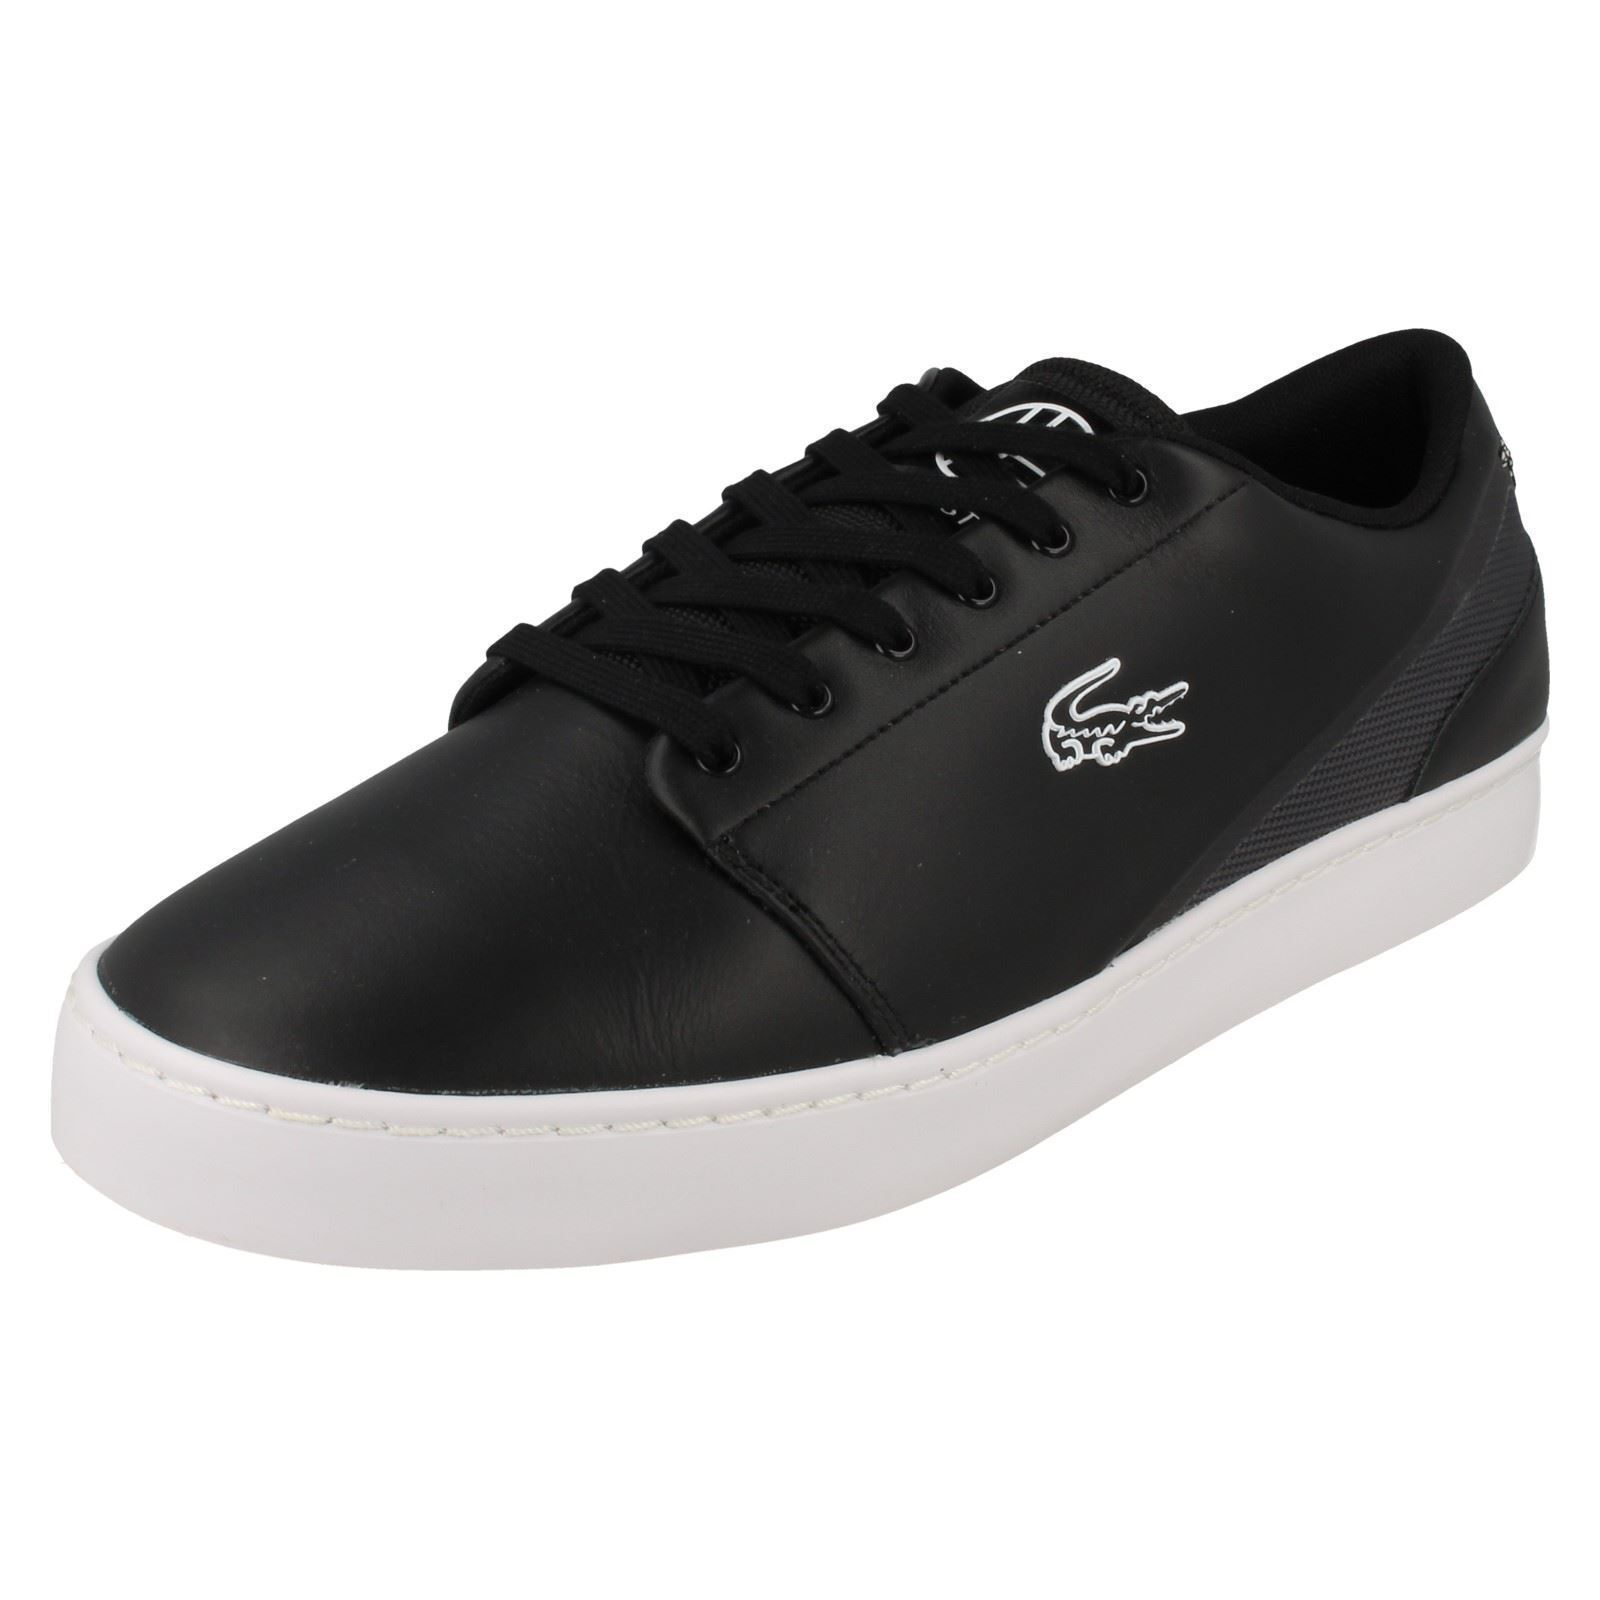 Mens Lacoste Black Lace Up Trainers UK Sizes 9-11 Court Legacy FLX